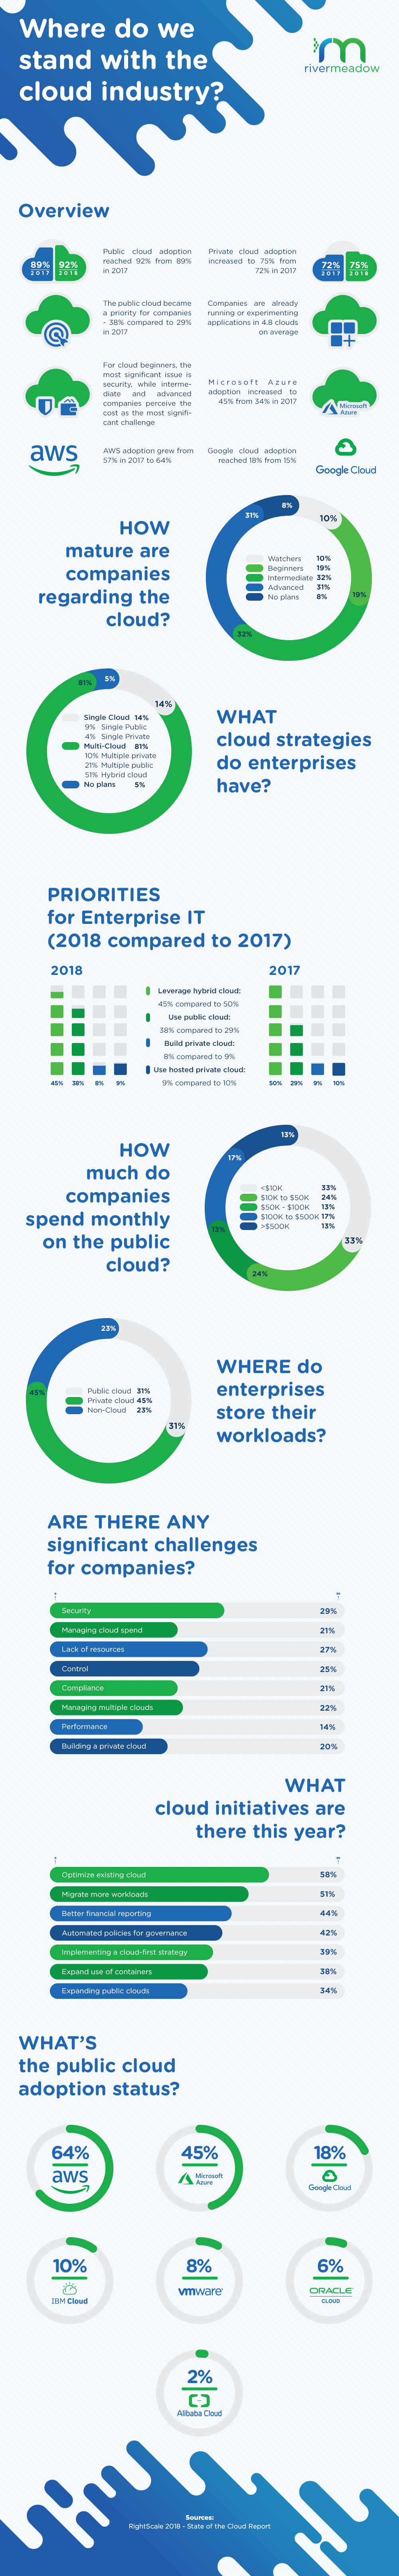 RightScale 2018 - State of the Cloud Report - Infographic